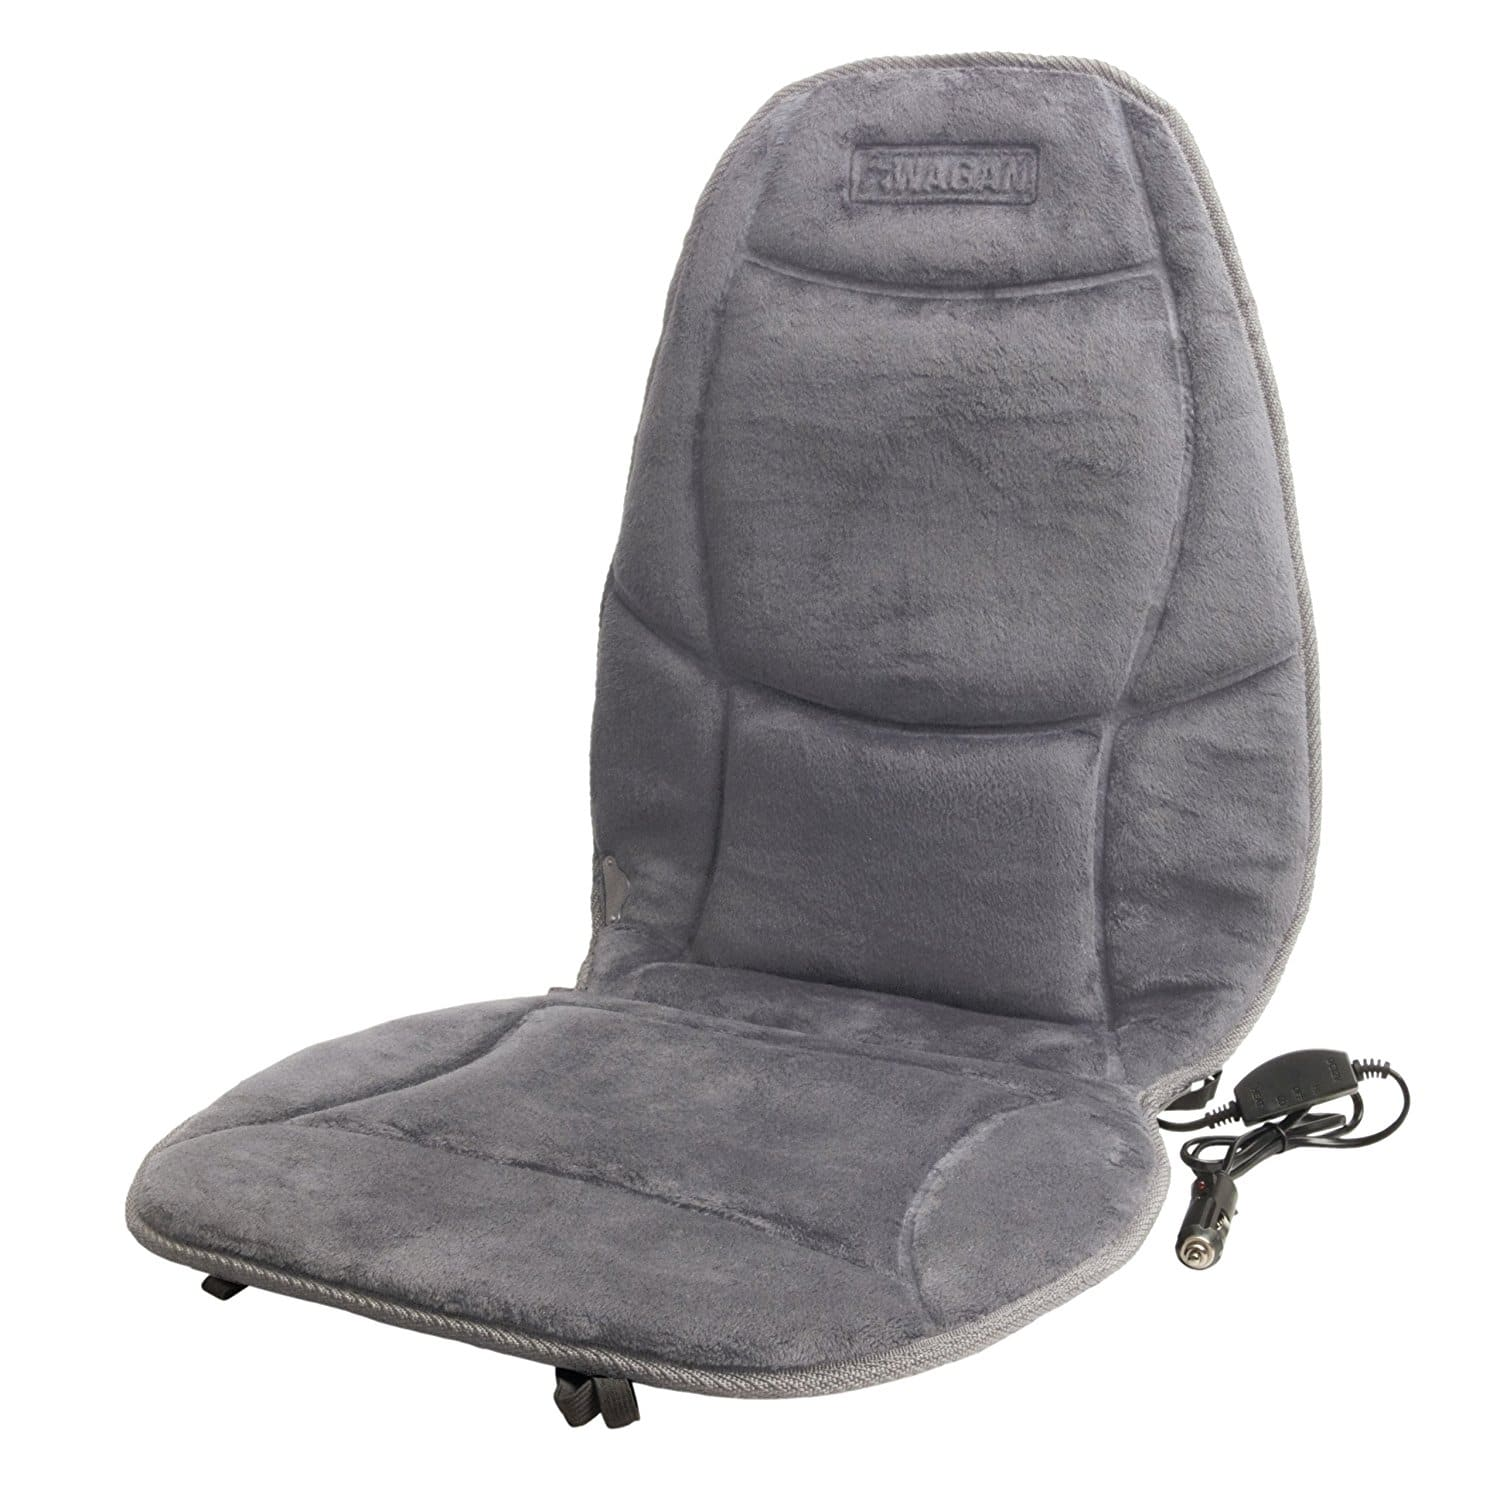 Heated Seat Covers - Wagan IN9438-2